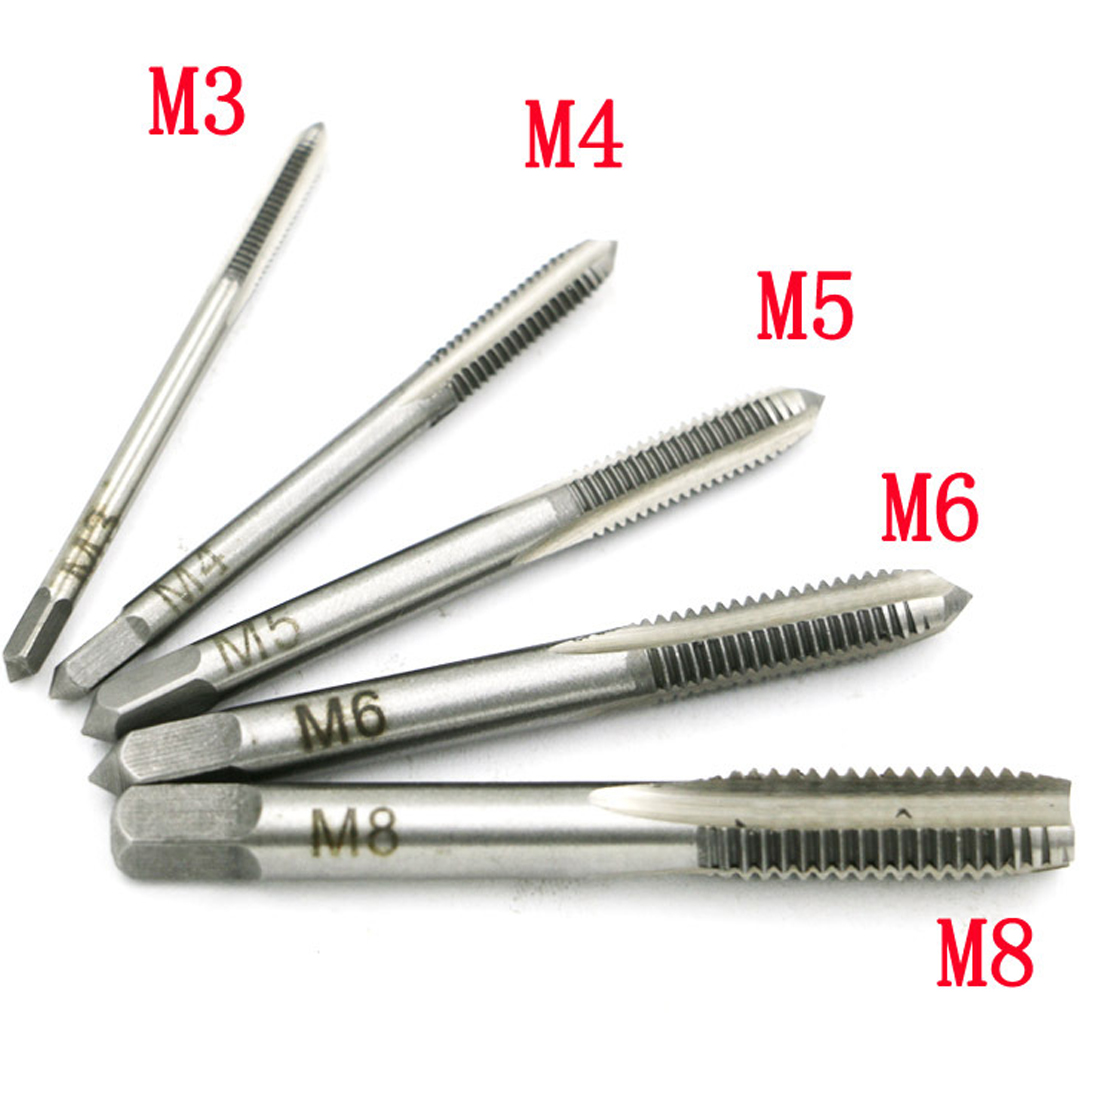 5pcs Screw Thread Tap Drill Bit HSS M3/M4/M5/M6/M8 Spiral Point Straight Fluted Screw Hand Tap Drill Set Hand Tools